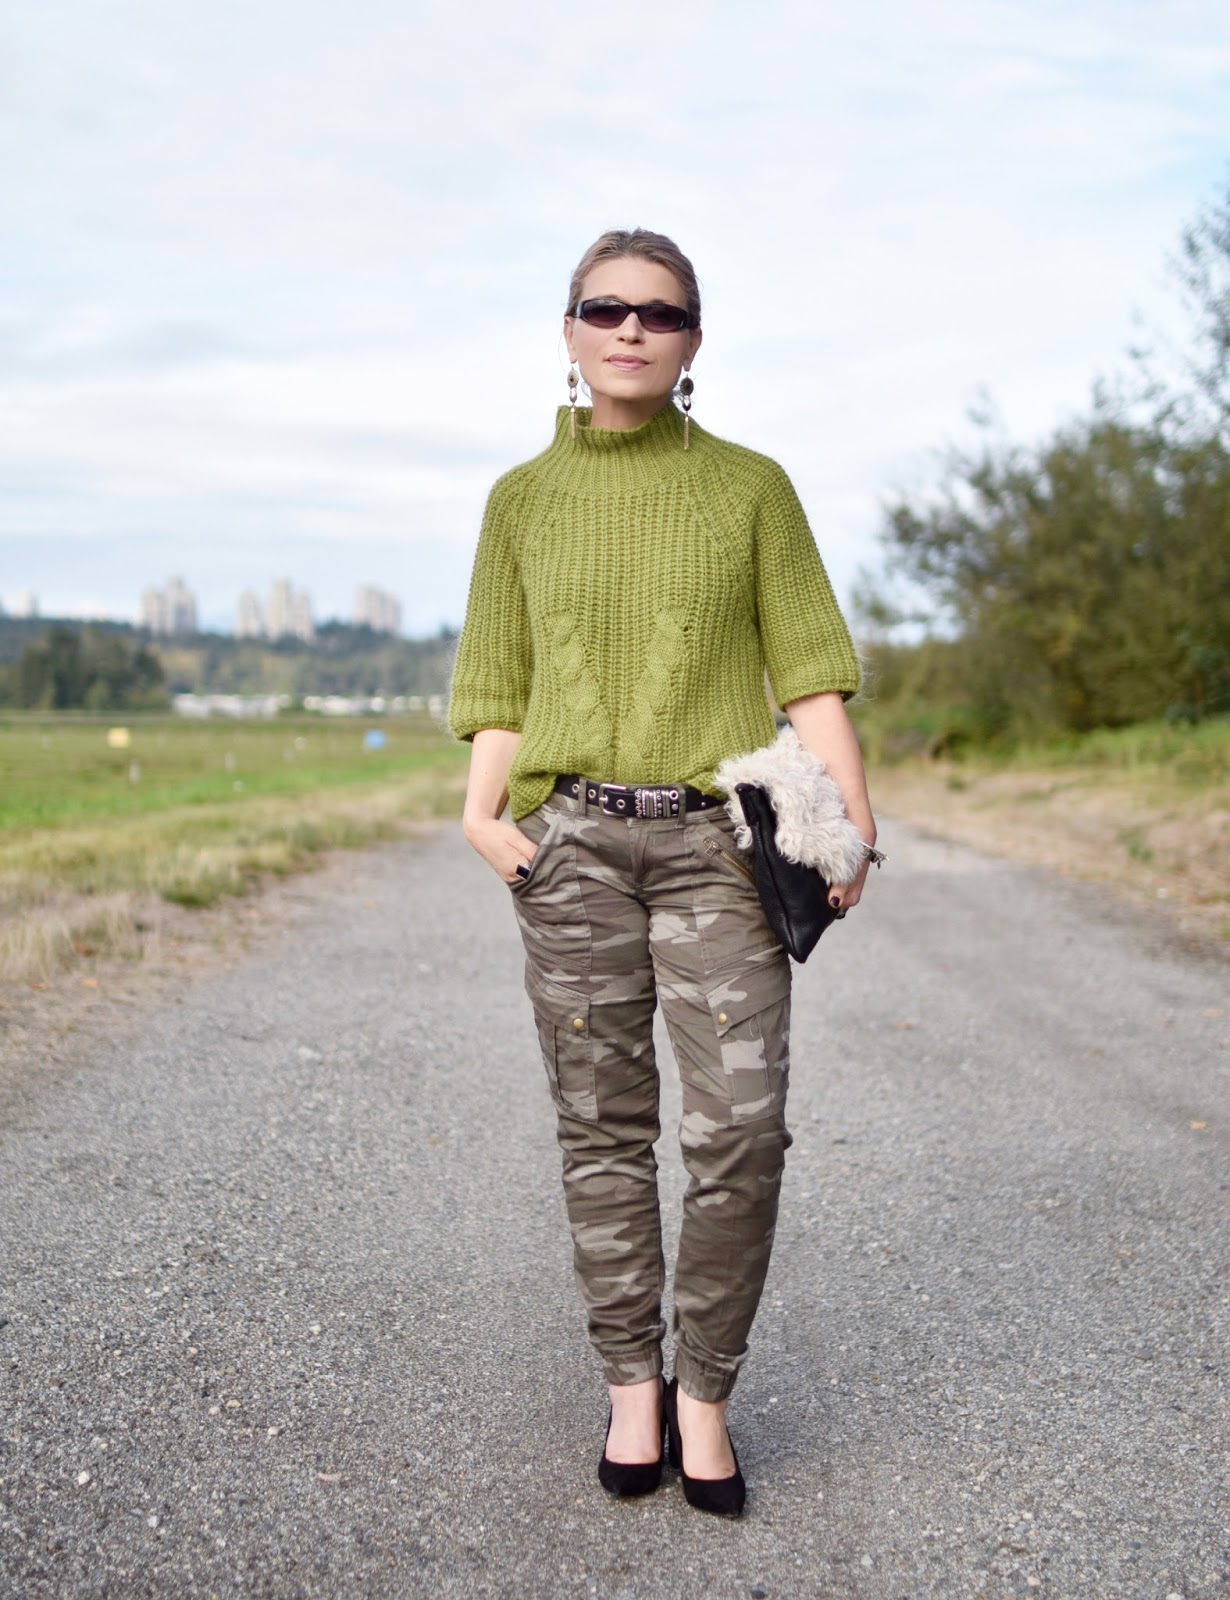 Monika Faulkner outfit inspiration - green mohair sweater, camouflage trousers, Marc Fisher block-heeled pumps